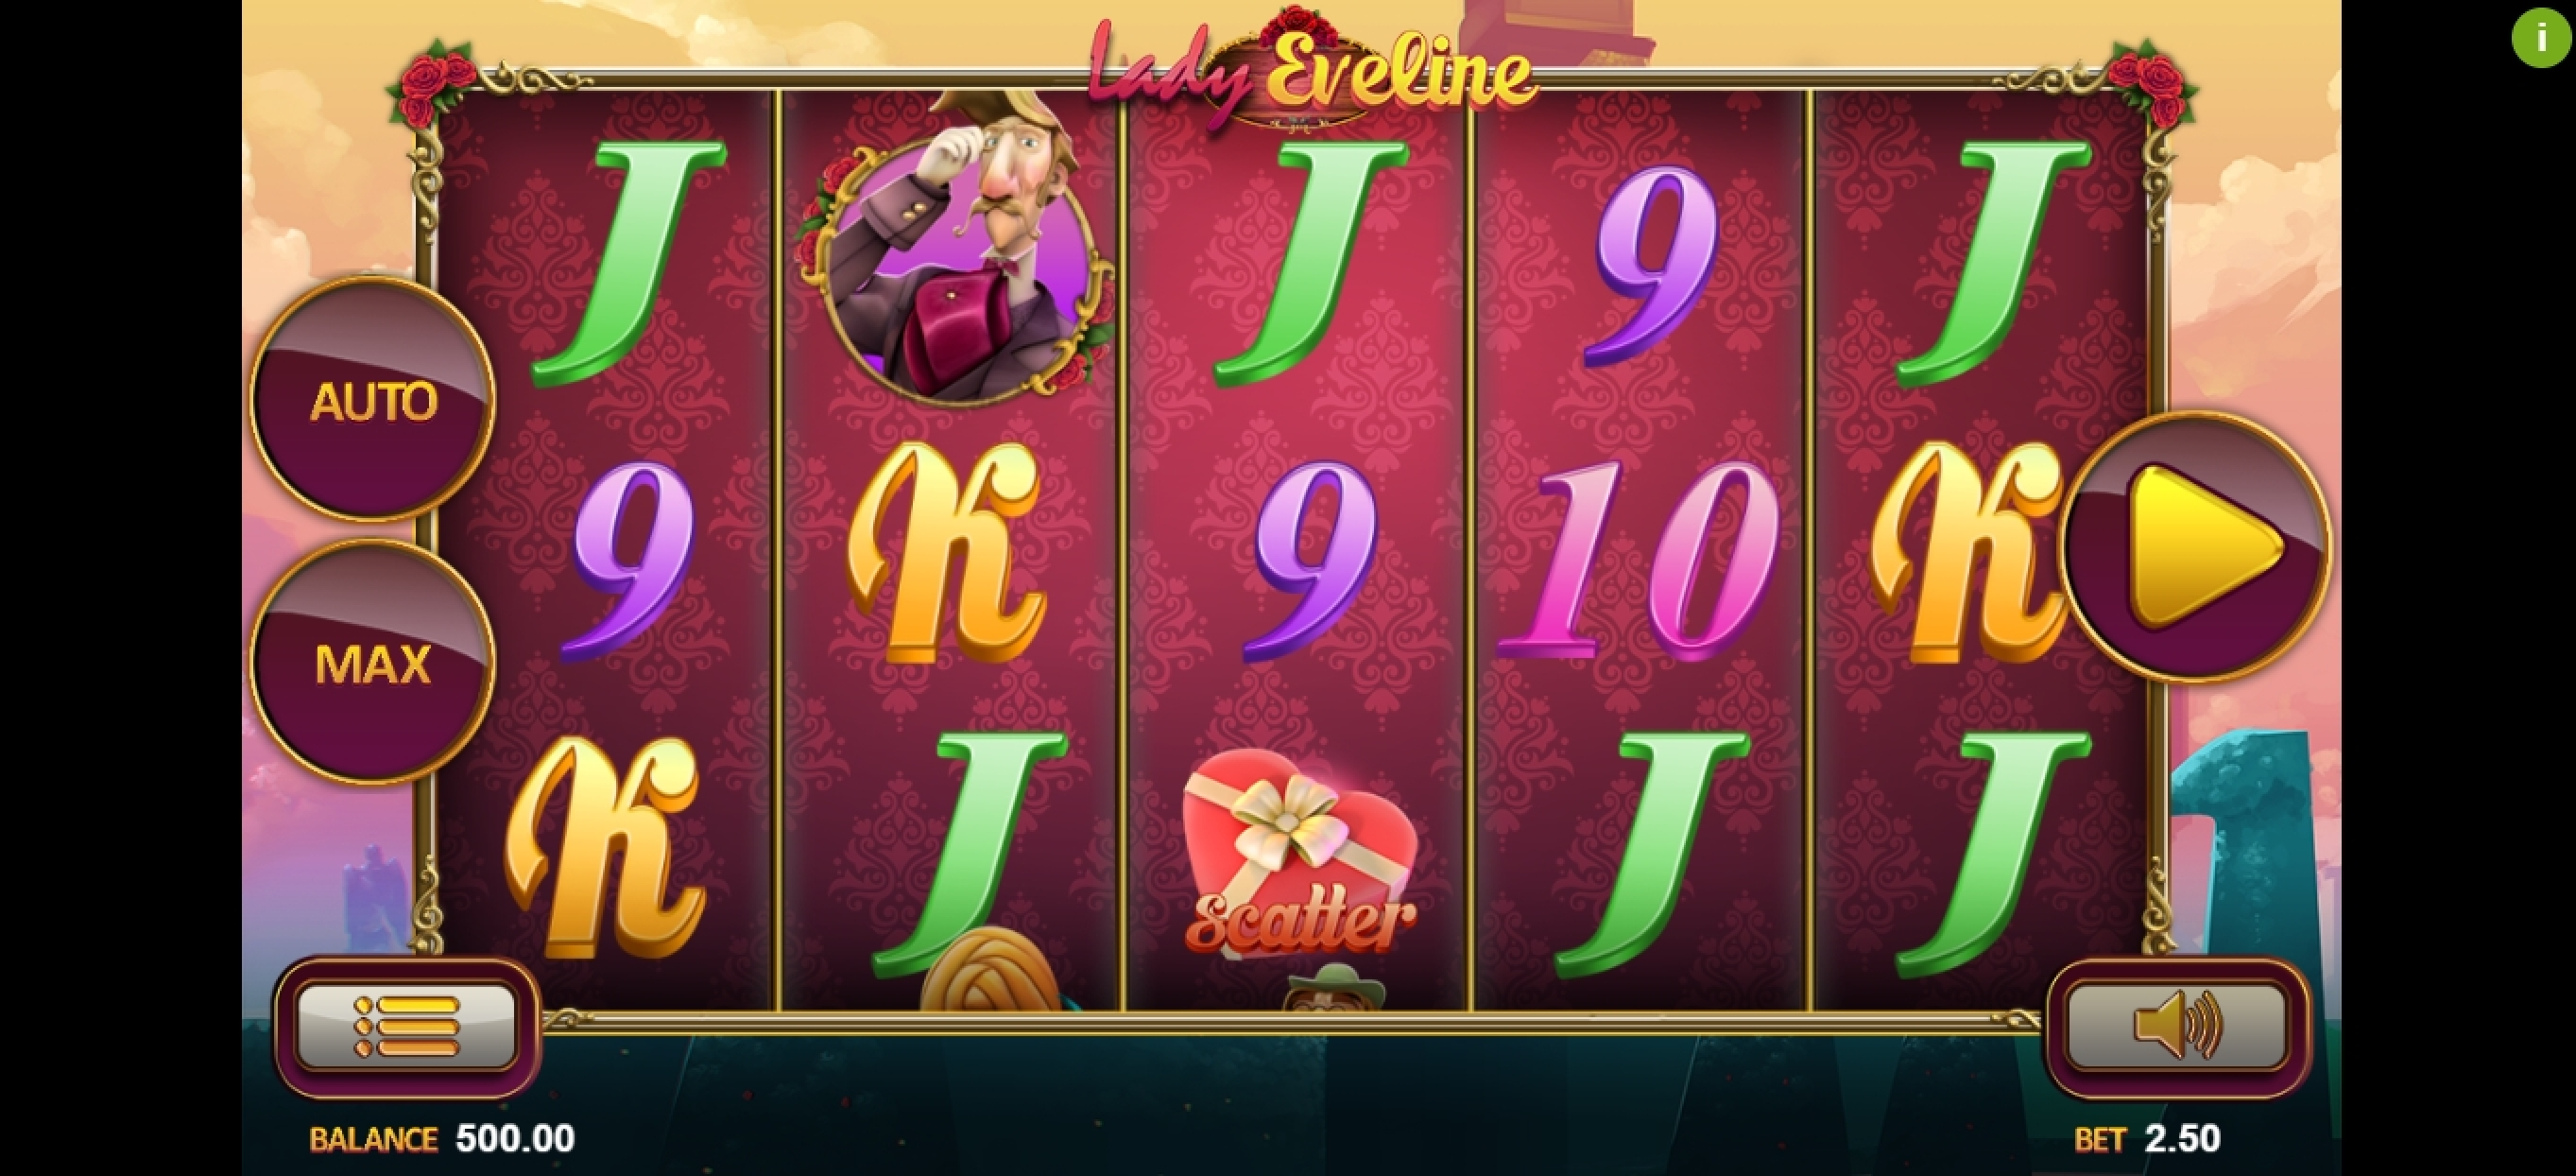 Reels in Lady Eveline Slot Game by Magma